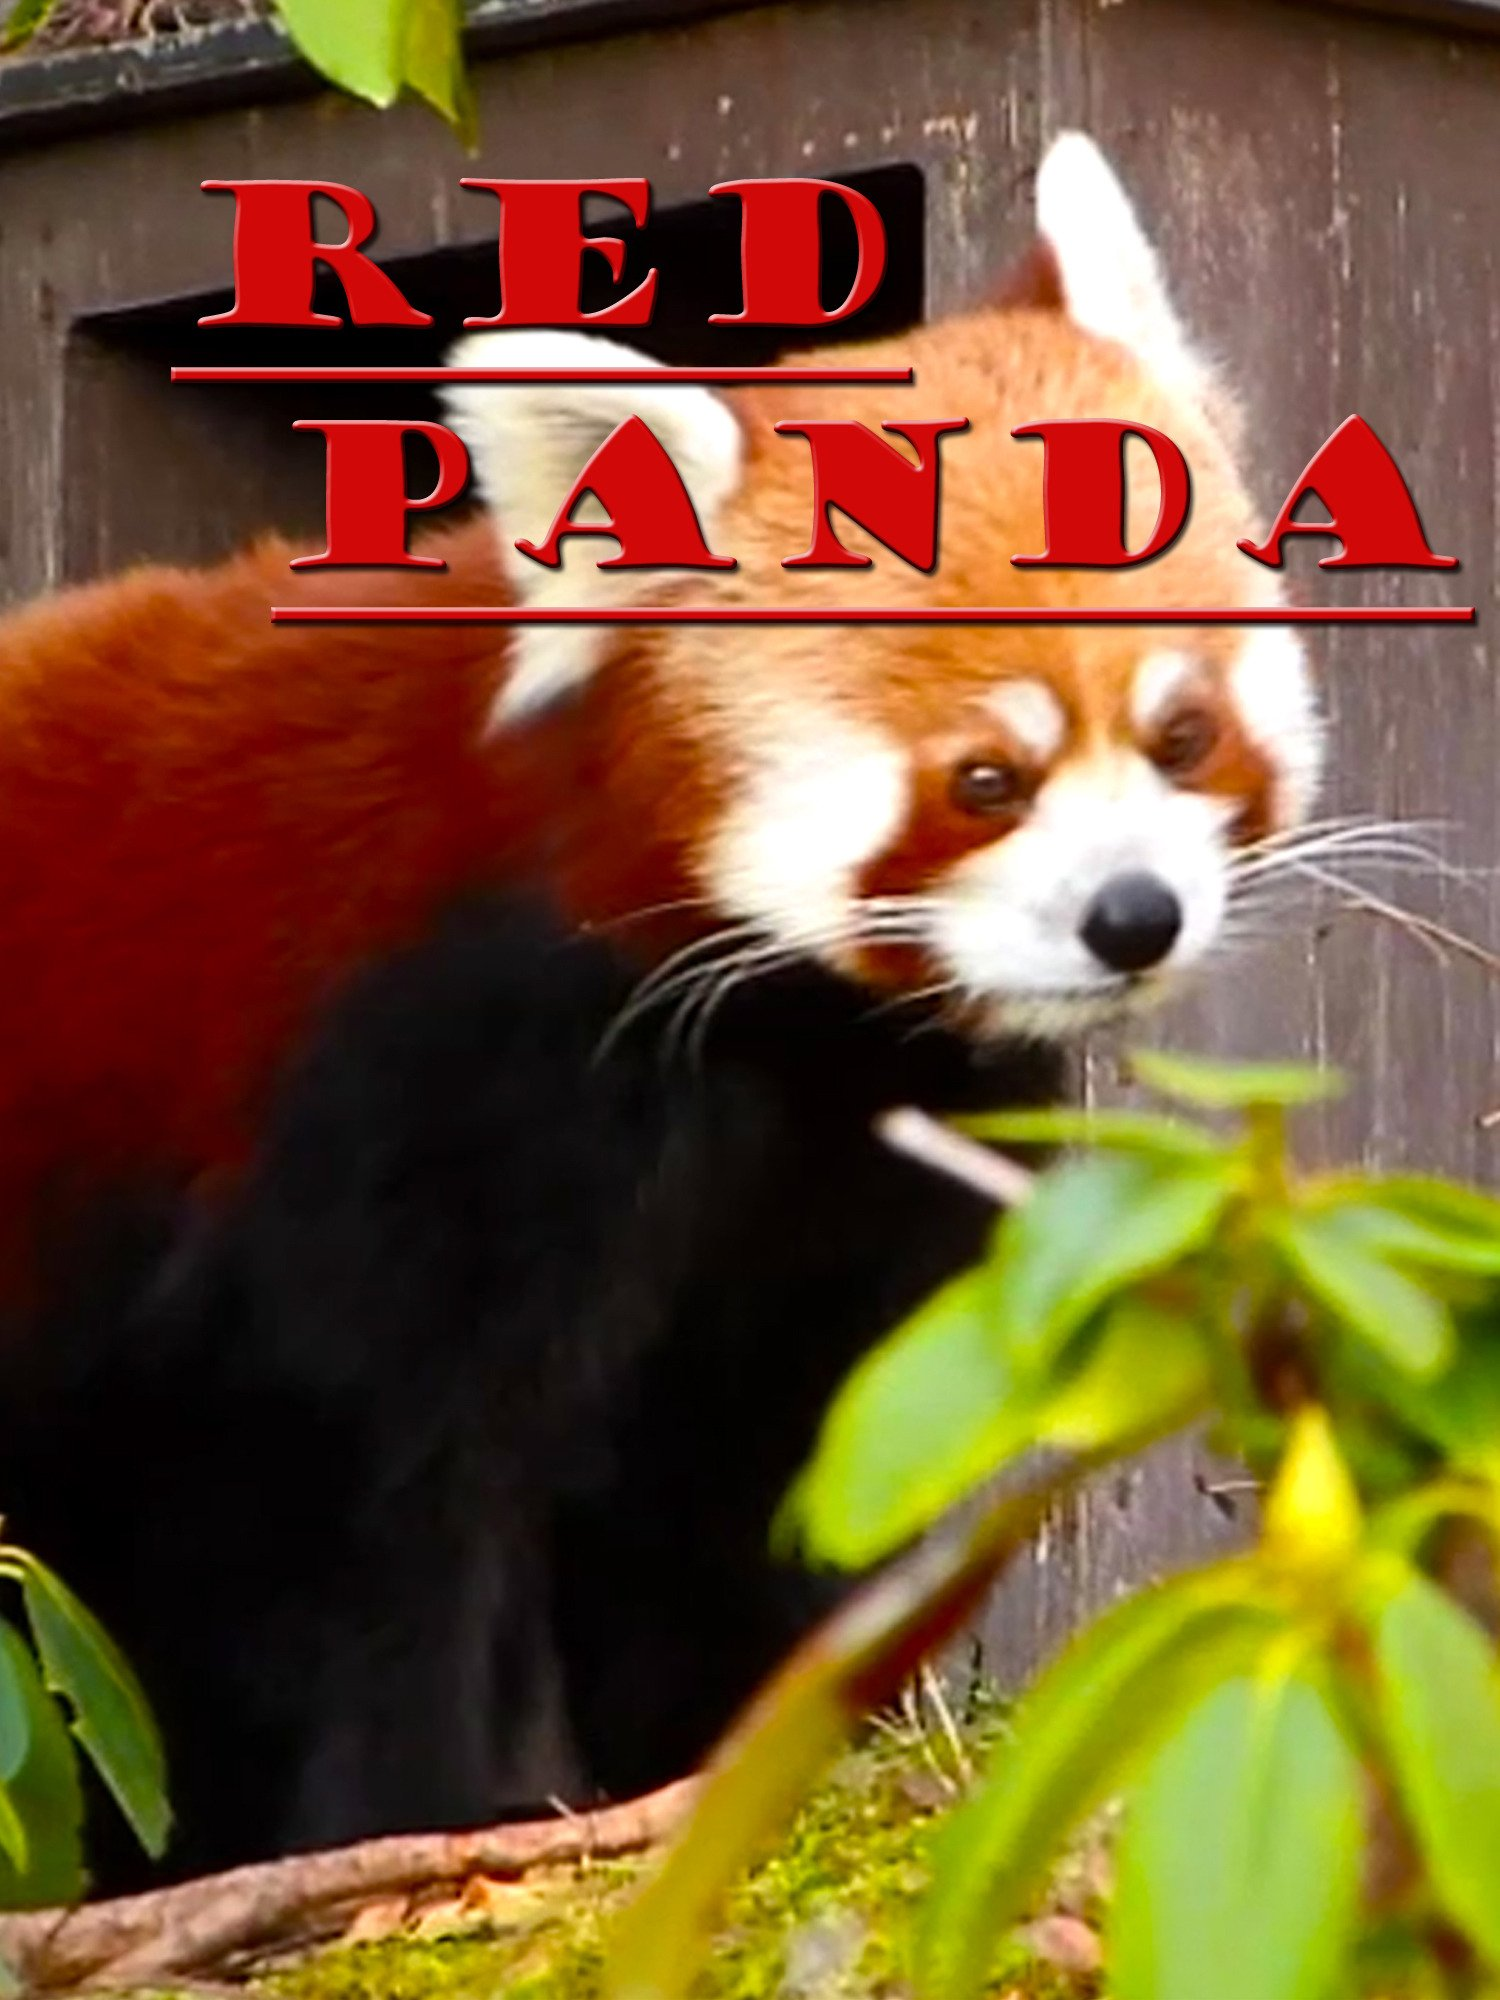 Clip: Red Panda on Amazon Prime Instant Video UK